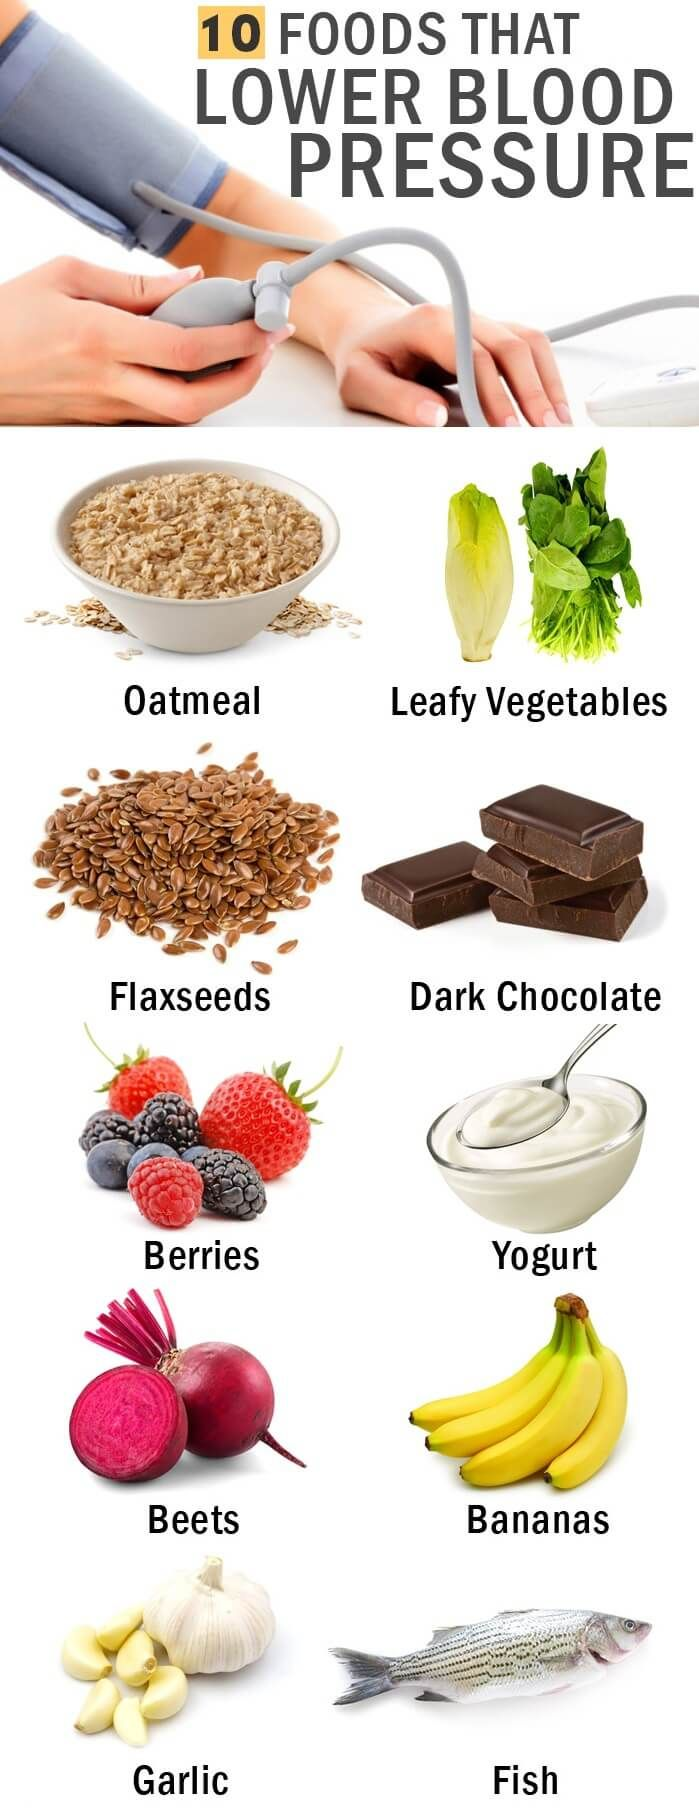 pressure blood lower healthy foods list low diet hypertension reduce quickly recipes fat drinks remedies naturally lowering natural meals reducing